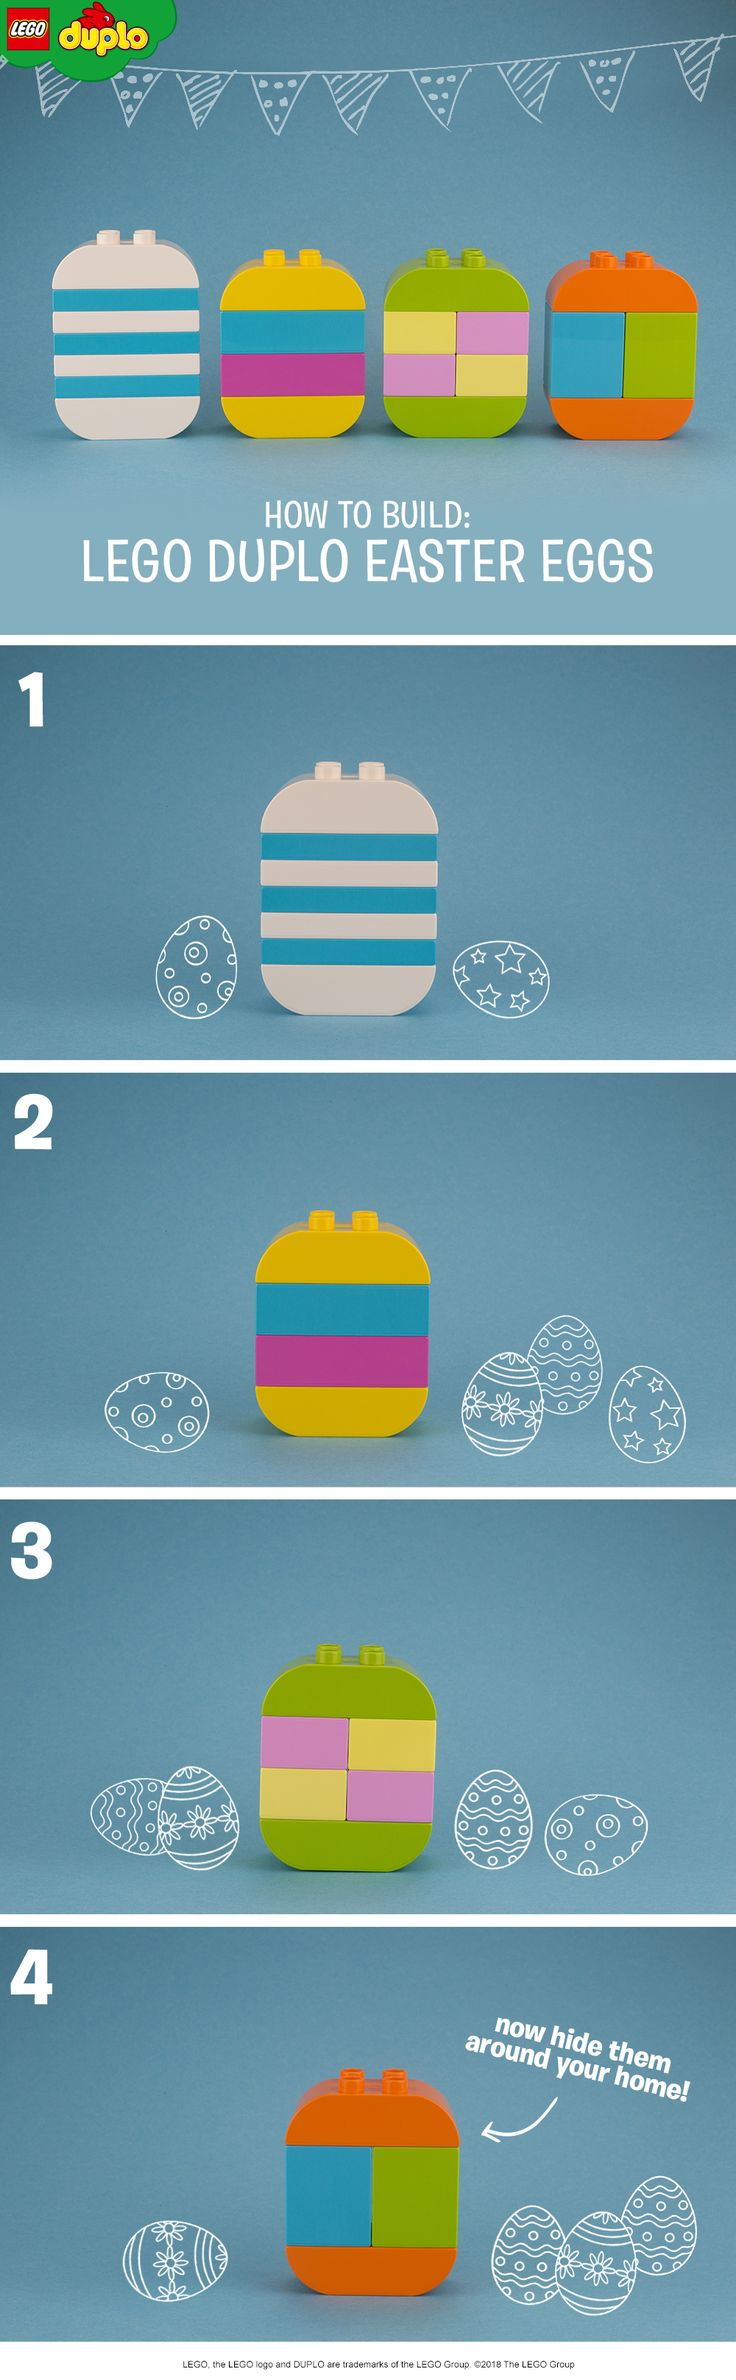 They might not be made of chocolate, but we think our LEGO DUPLO eggs look just as good! Build them together with your kids and then hide them around the house for your own alternative Easter egg hunt. If you want to make it even more difficult, try hiding the bricks separately so the kids have to race to be the first to build a whole egg. Get more colorful bricks here.